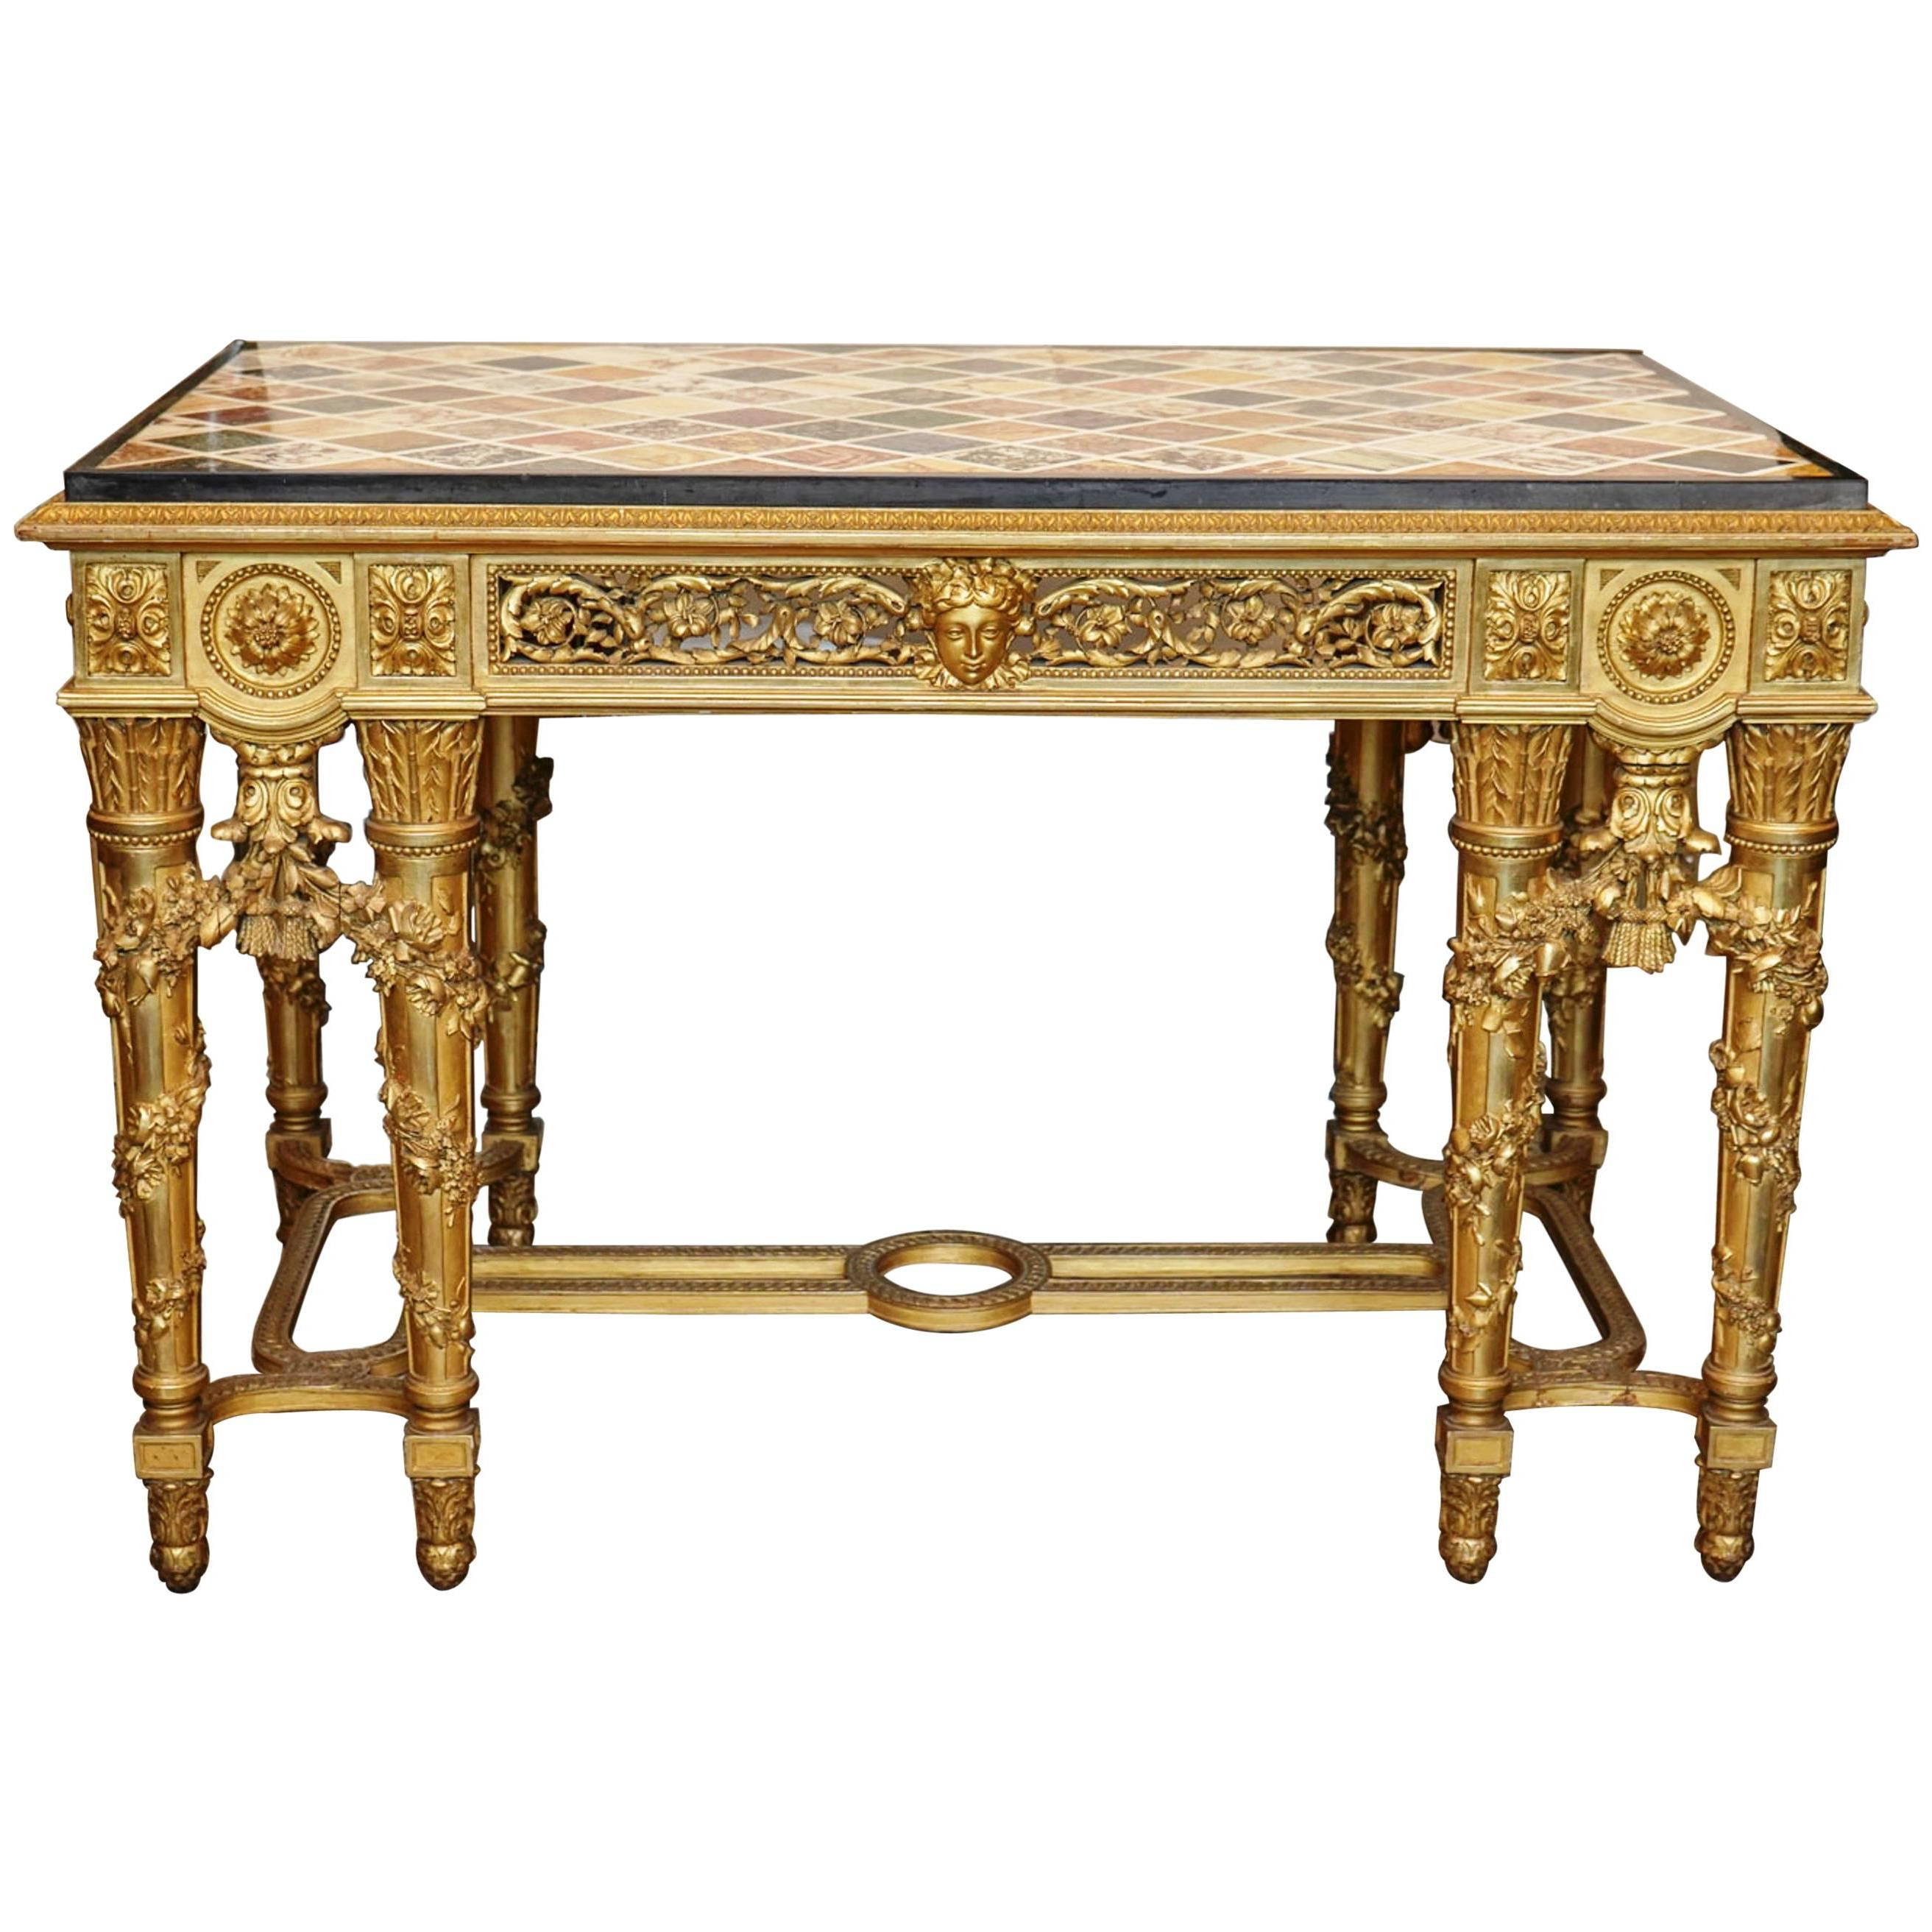 Extraordinary Rectangular Giltwood Centre Table 19Th Century Marble Inside Most Recently Released Intarsia Console Tables (View 5 of 20)